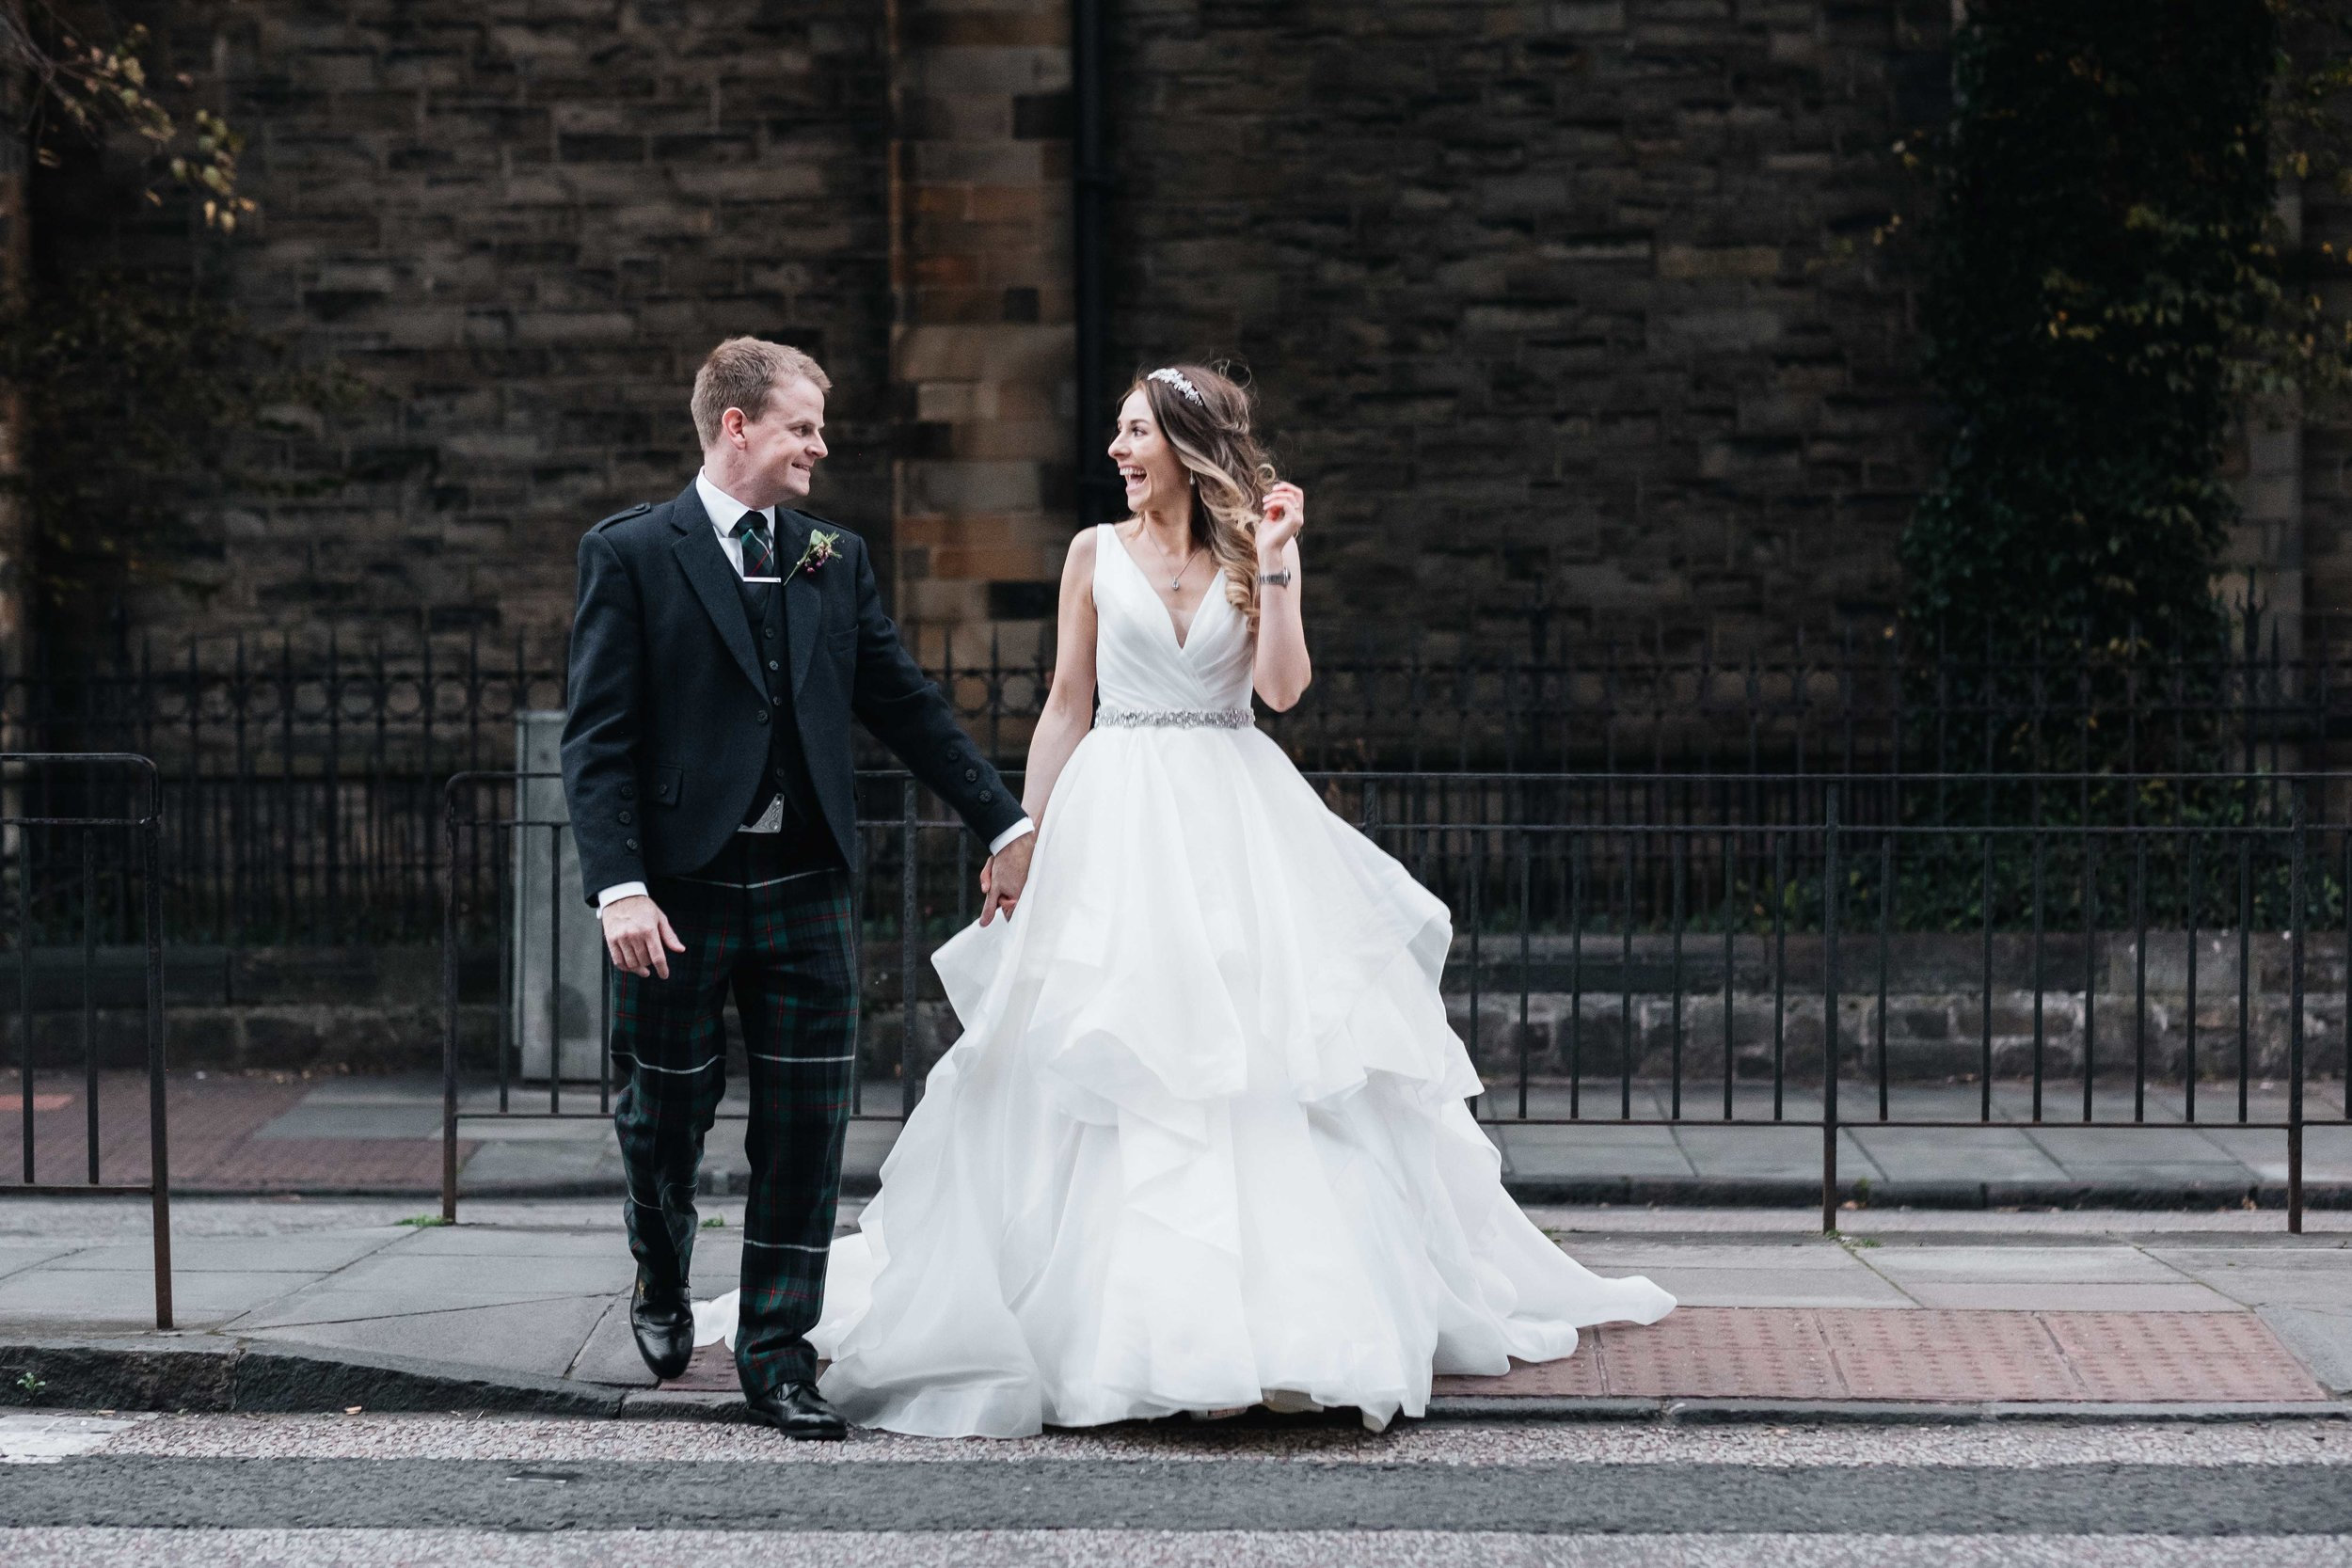 bride and groom cross the street, looking and smiling at each other